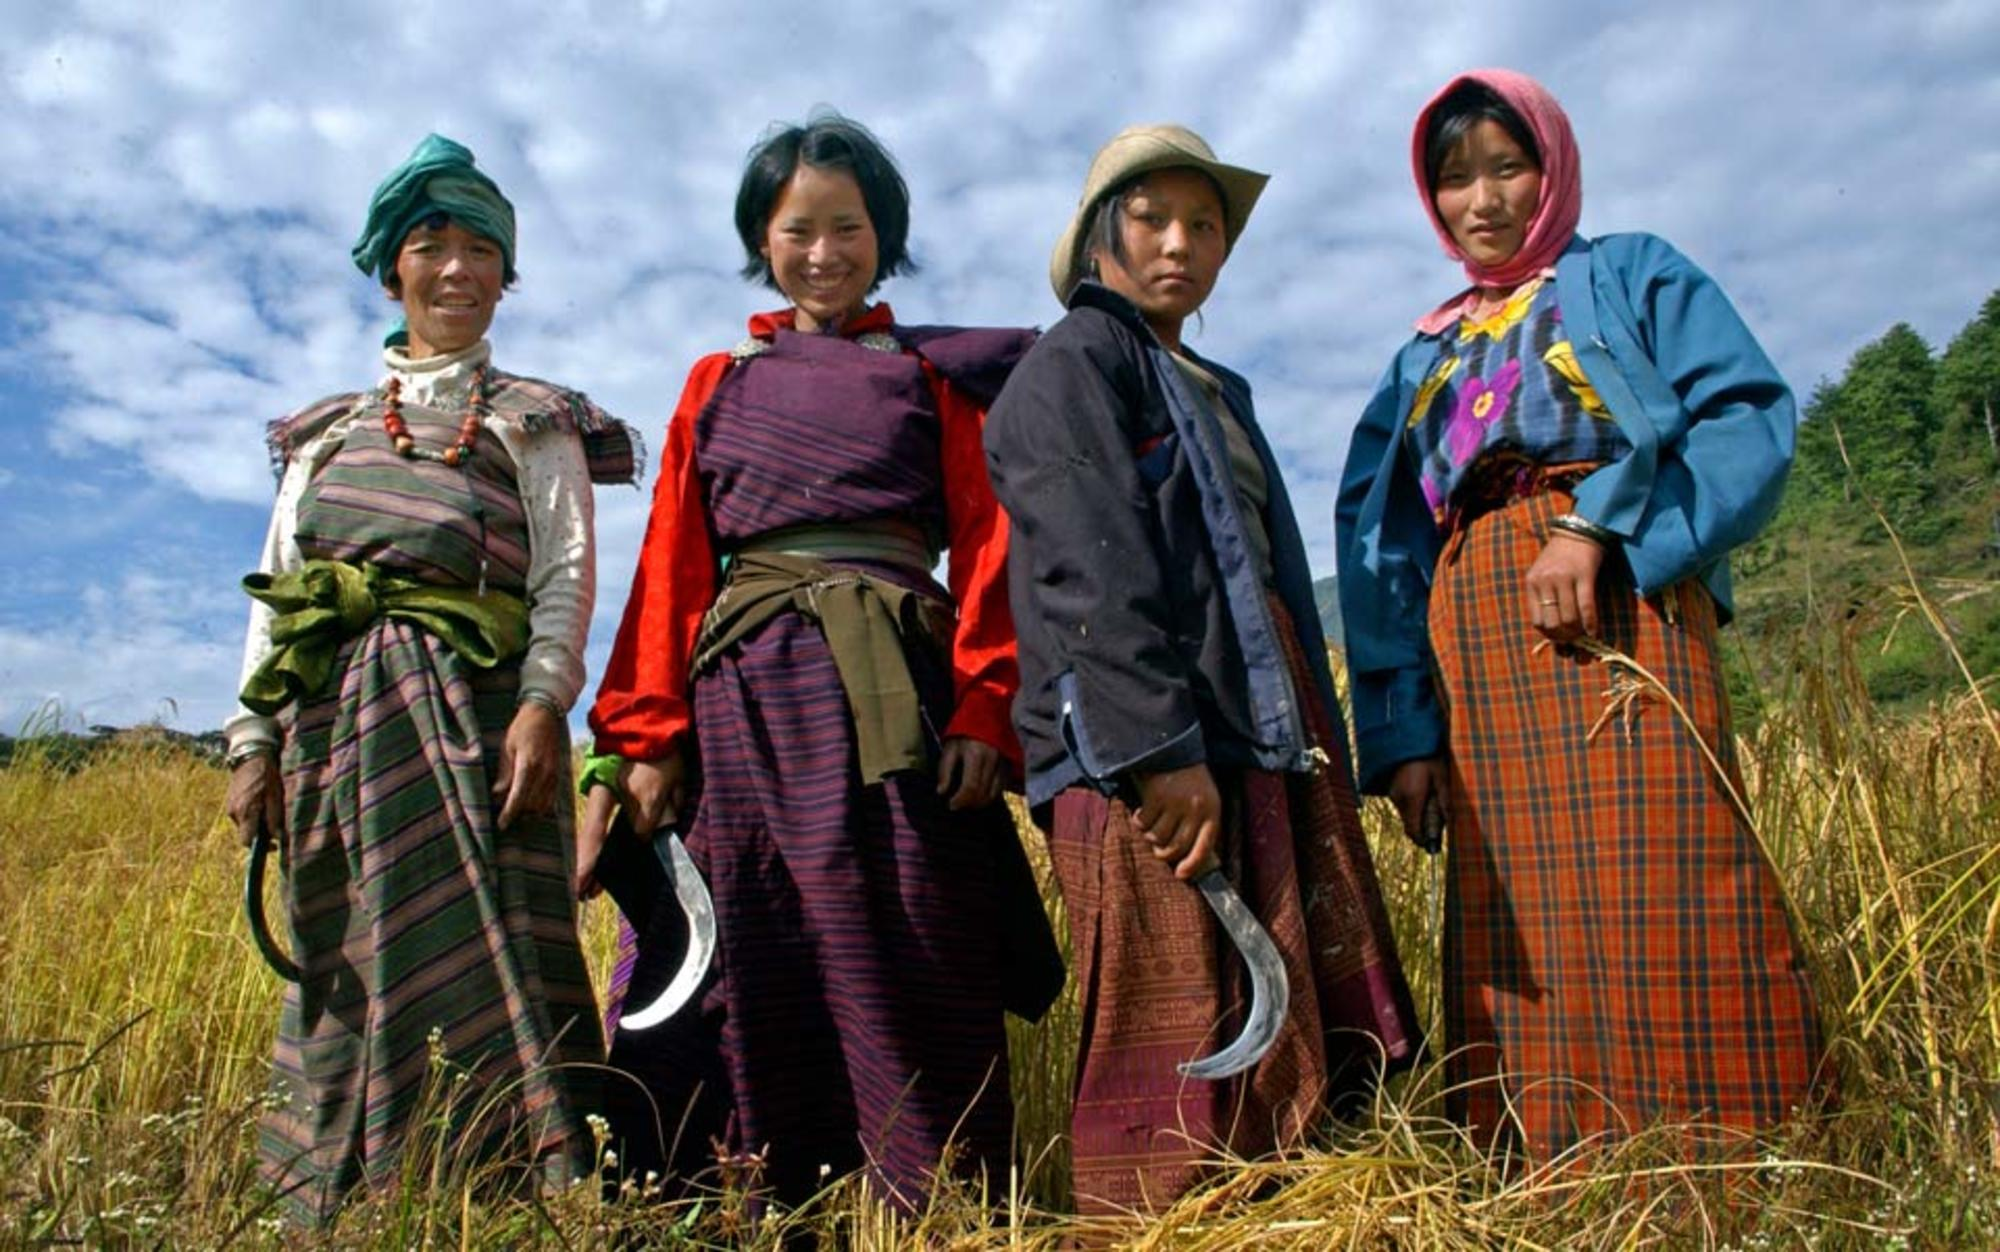 essay on gnh of bhutan Bhutan: deforestation and wildlife extinction introduction considered to be located on the roof of the world, bhutan is a mountainous and sparsely populated region that.